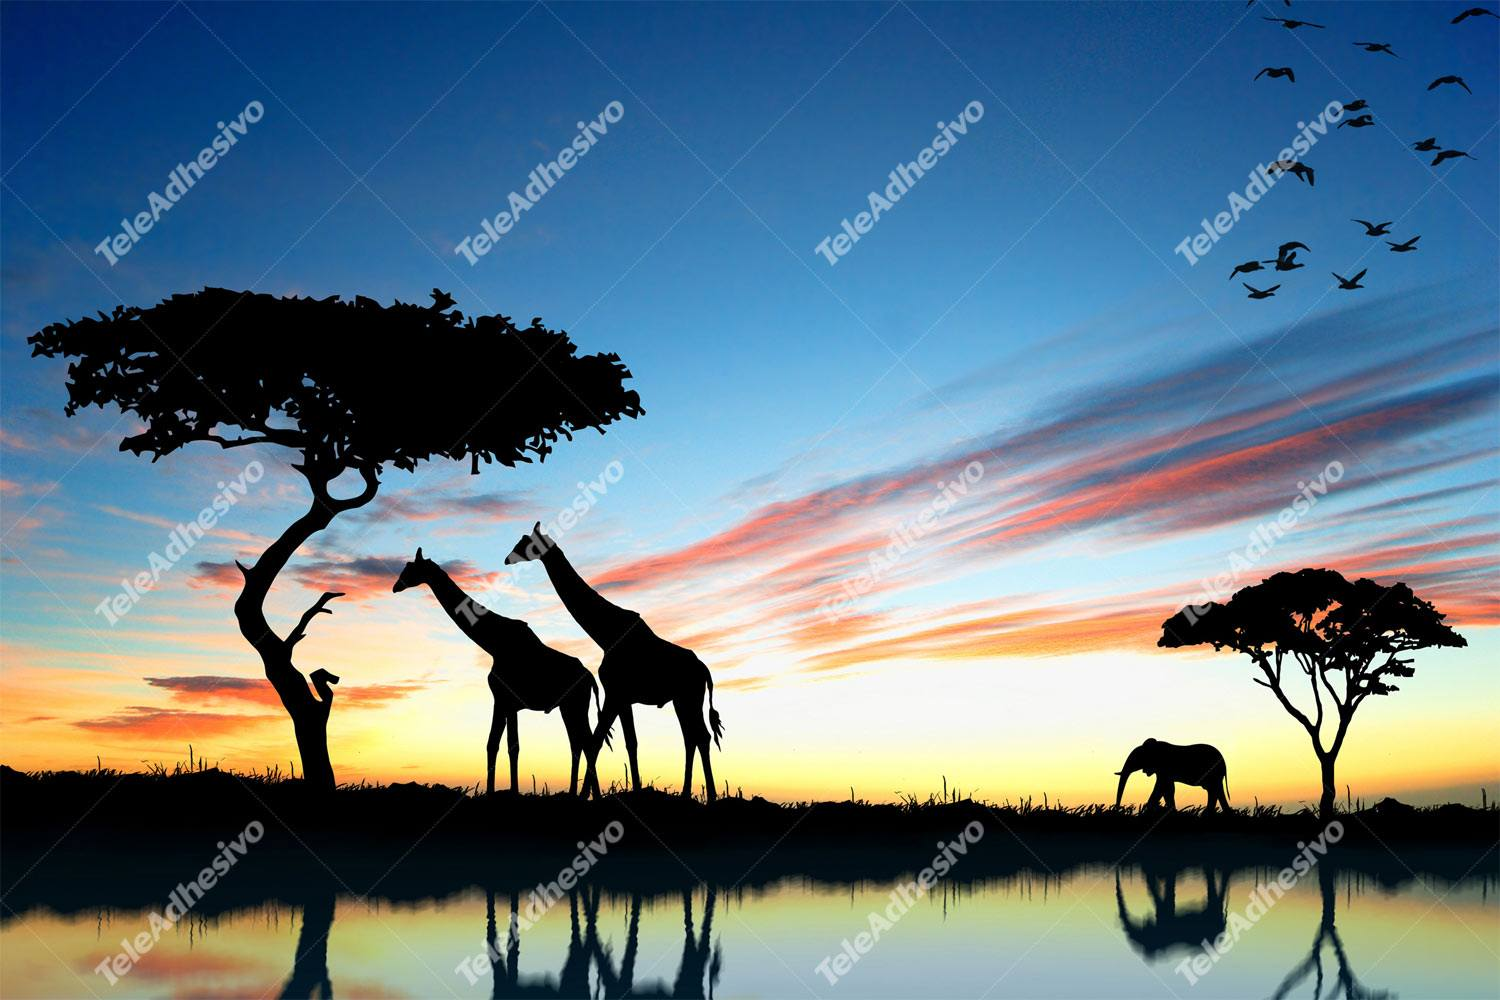 Fotomurales: Atardecer africano